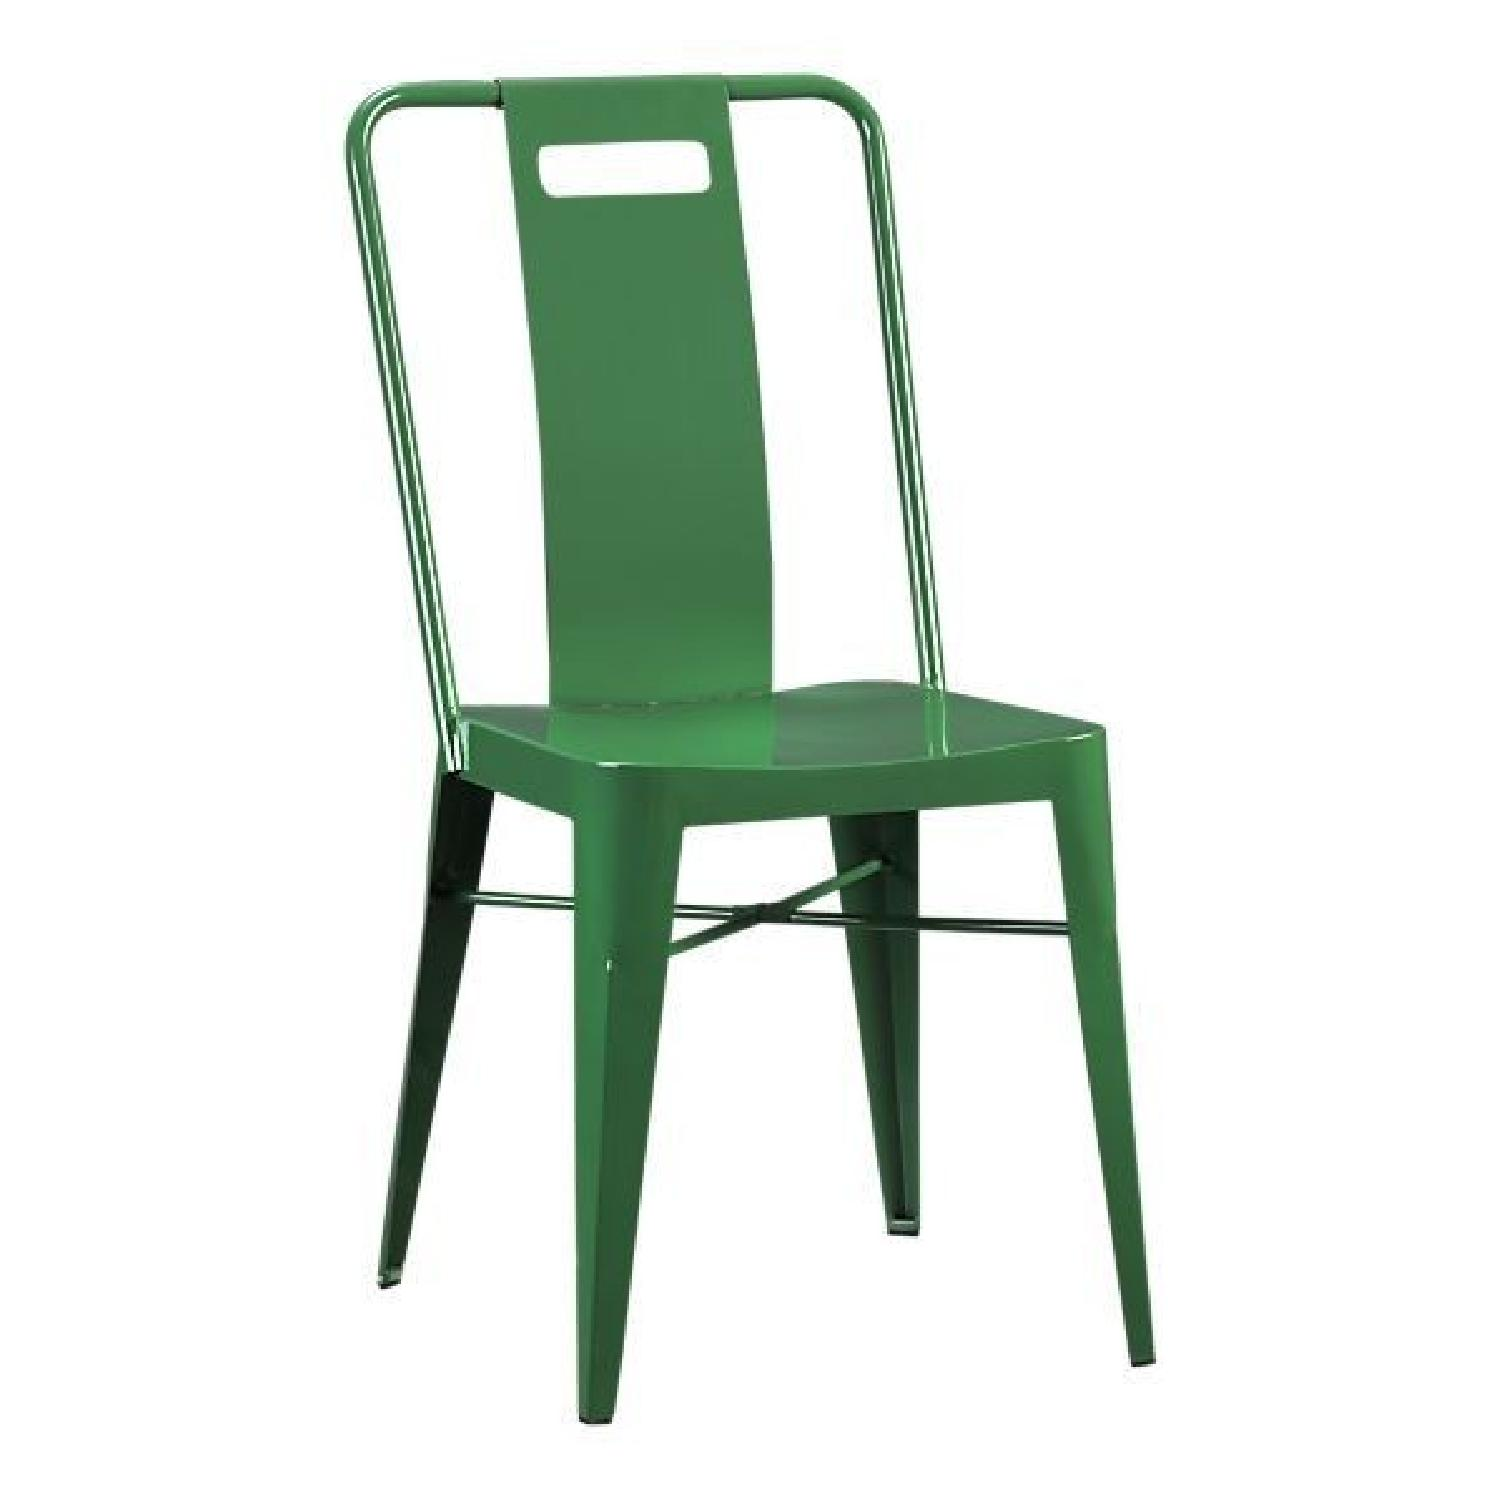 Crate & Barrel Green Metal Dining Chairs AptDeco